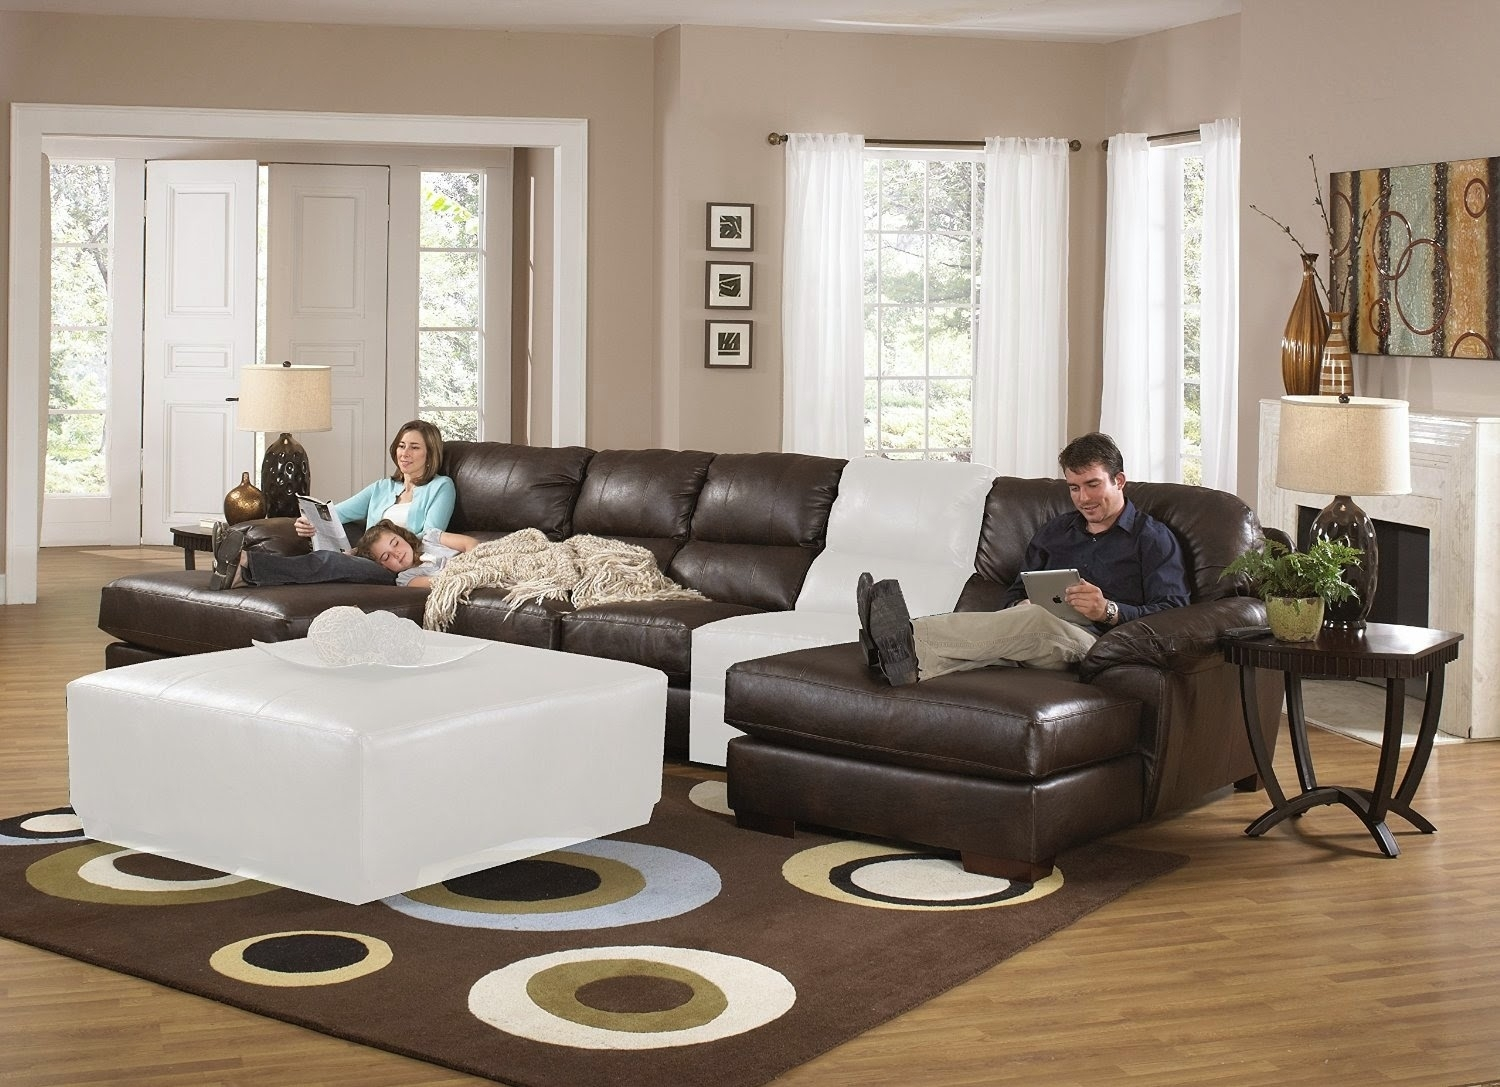 Best Reclining Sofa For The Money: Sleeper Sectional Sofa Within Jackson 6 Piece Power Reclining Sectionals With  Sleeper (Image 5 of 25)